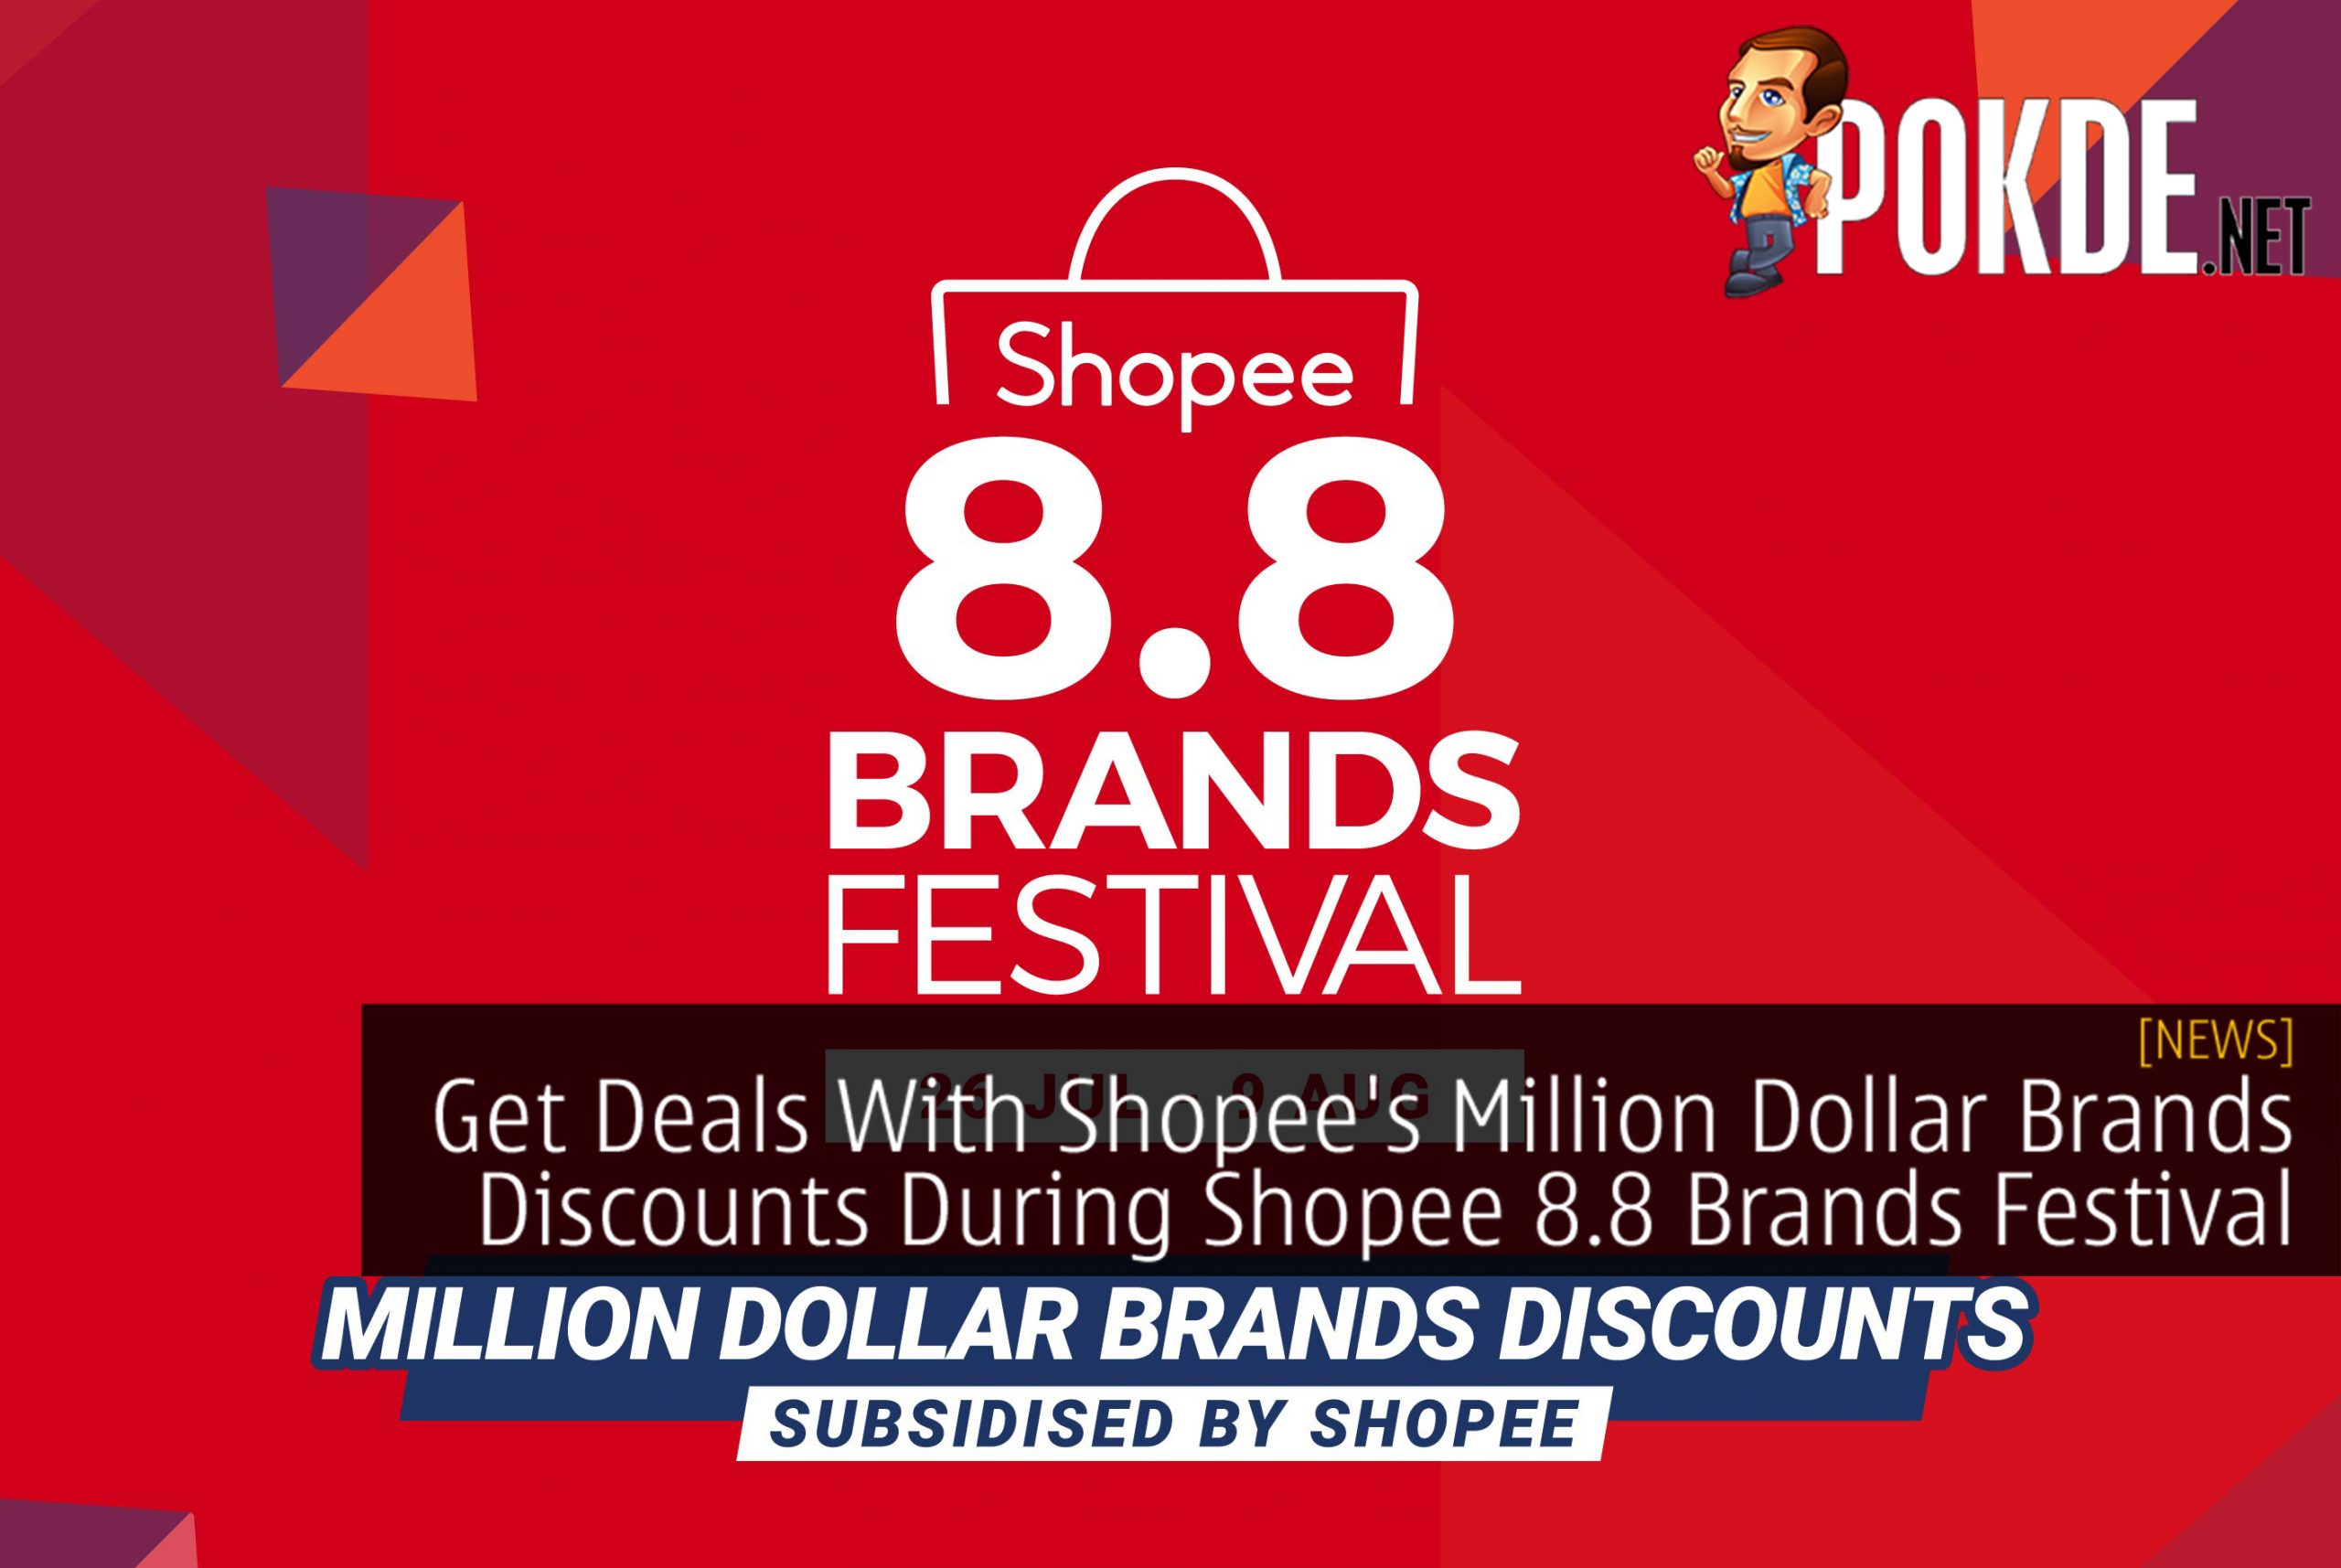 Get Deals Up To 96% Off With Shopee's Million Dollar Brands Discounts During Shopee 8.8 Brands Festival 3